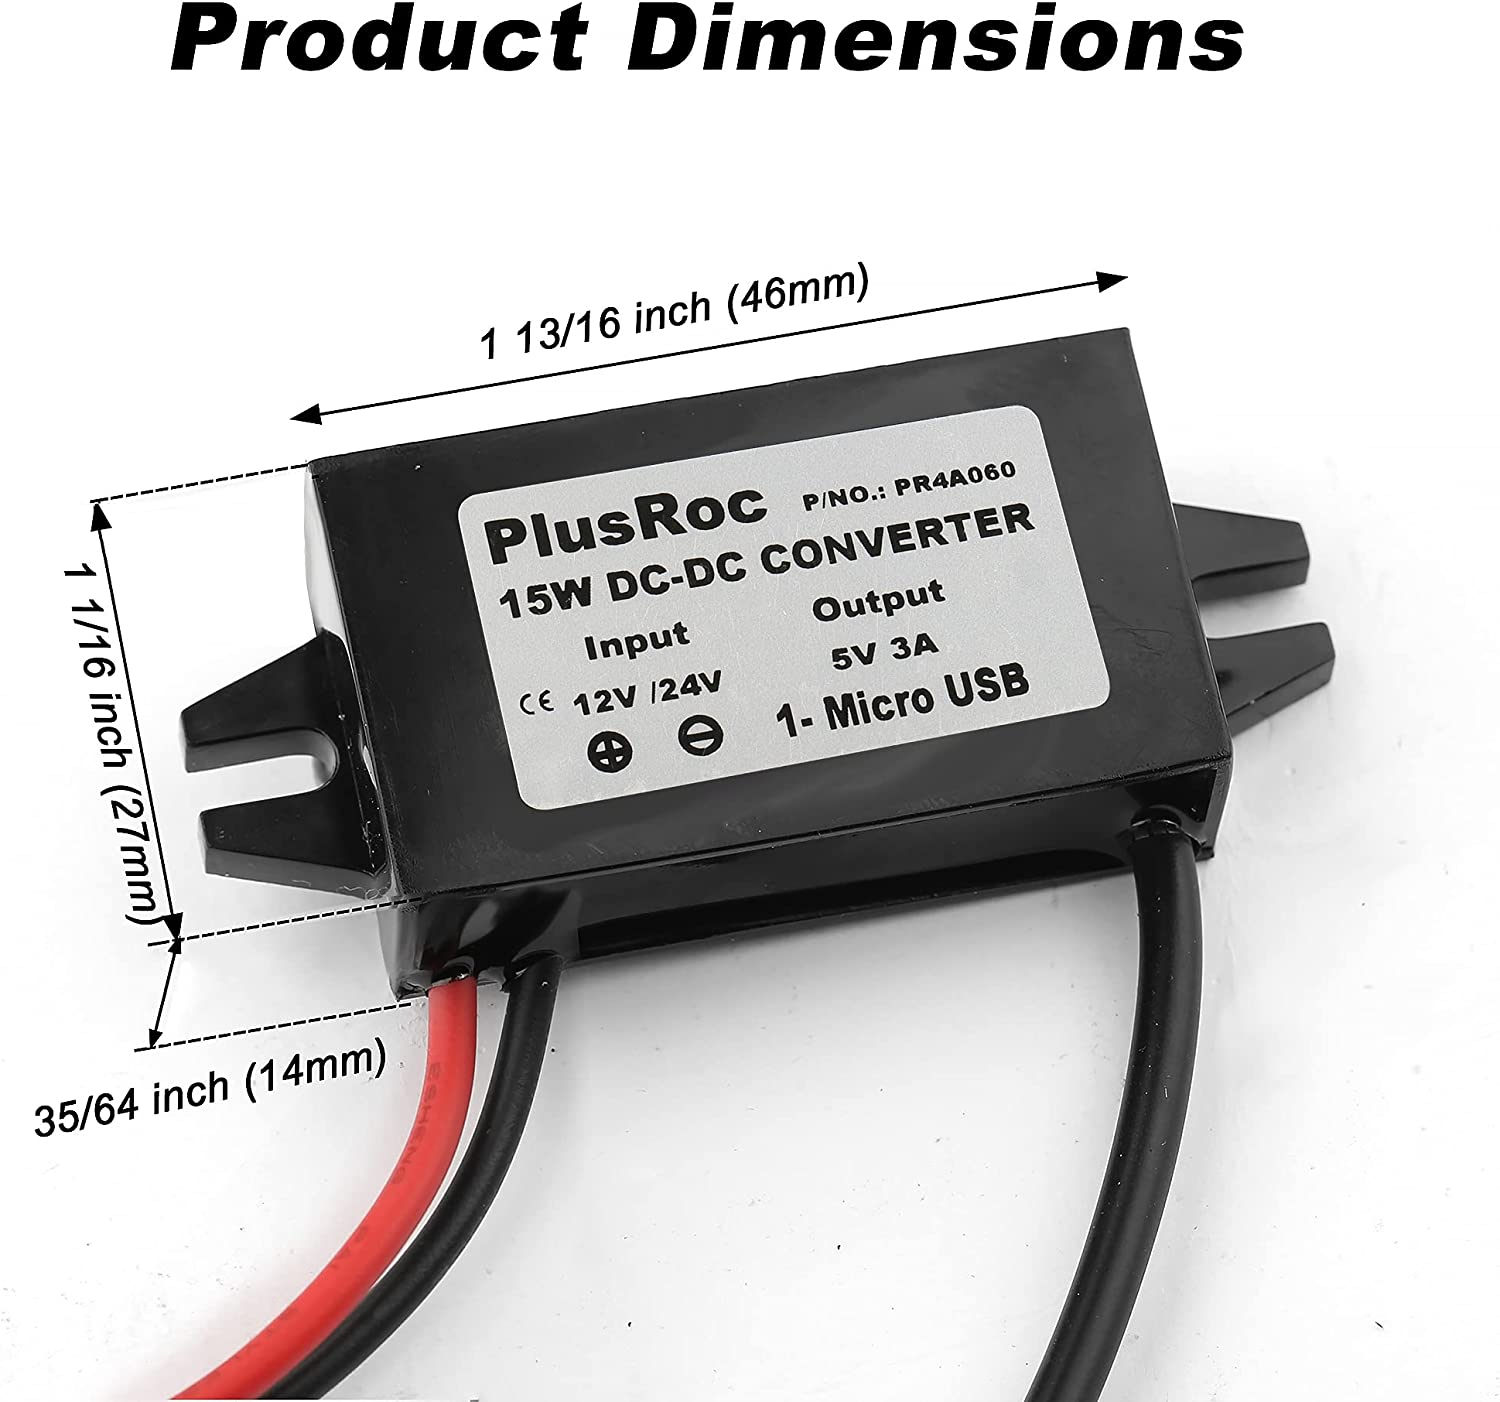 PlusRoc Waterproof 12V/24V to 5V Converter DC-DC Step Down Module Power Adapter Compatible with Ring Keypad, Cellphone, Car (Micro USB Connector)